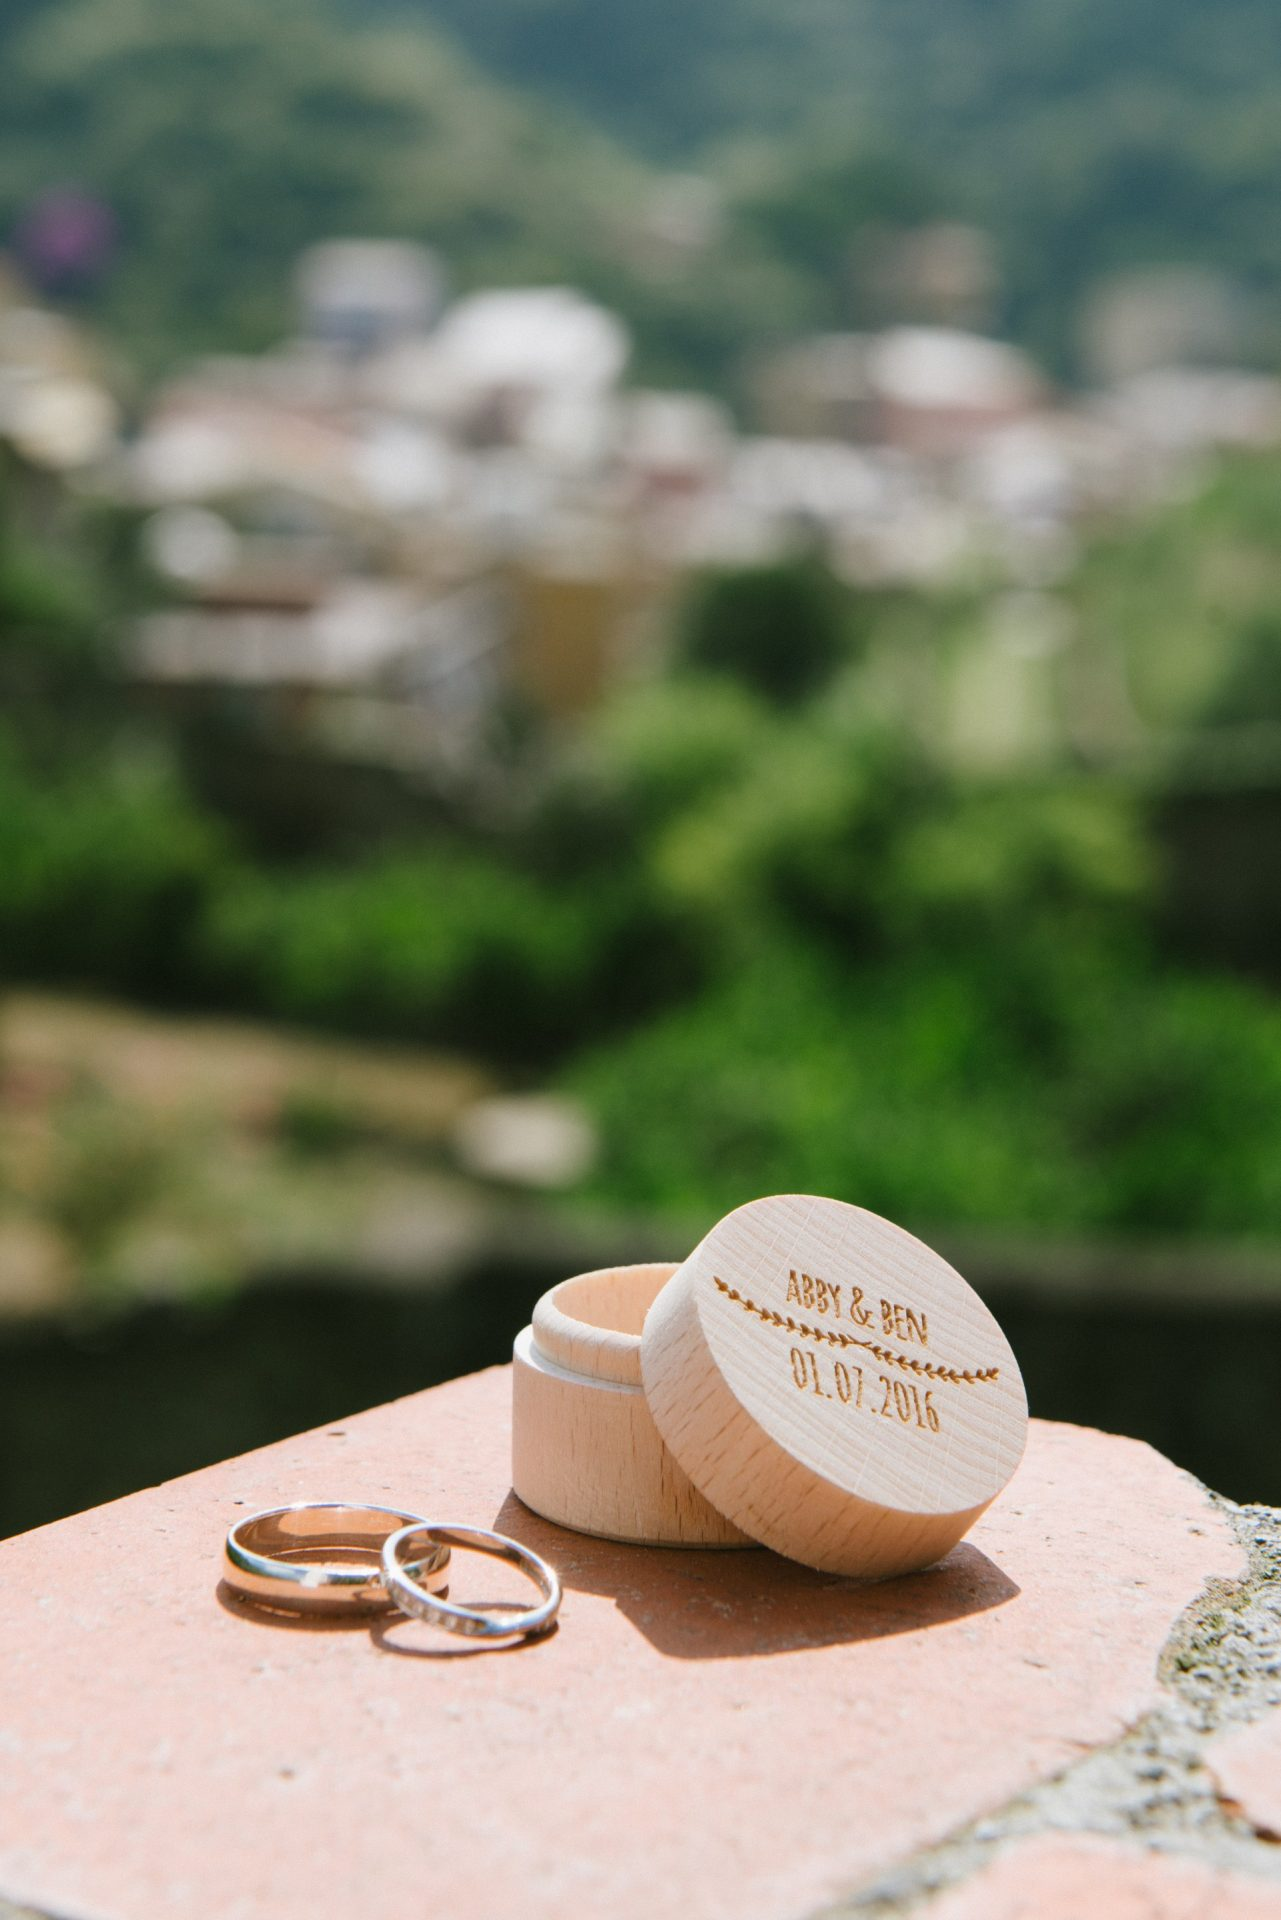 Wedding rings and box with Cinque Terre Italian landscape in the background